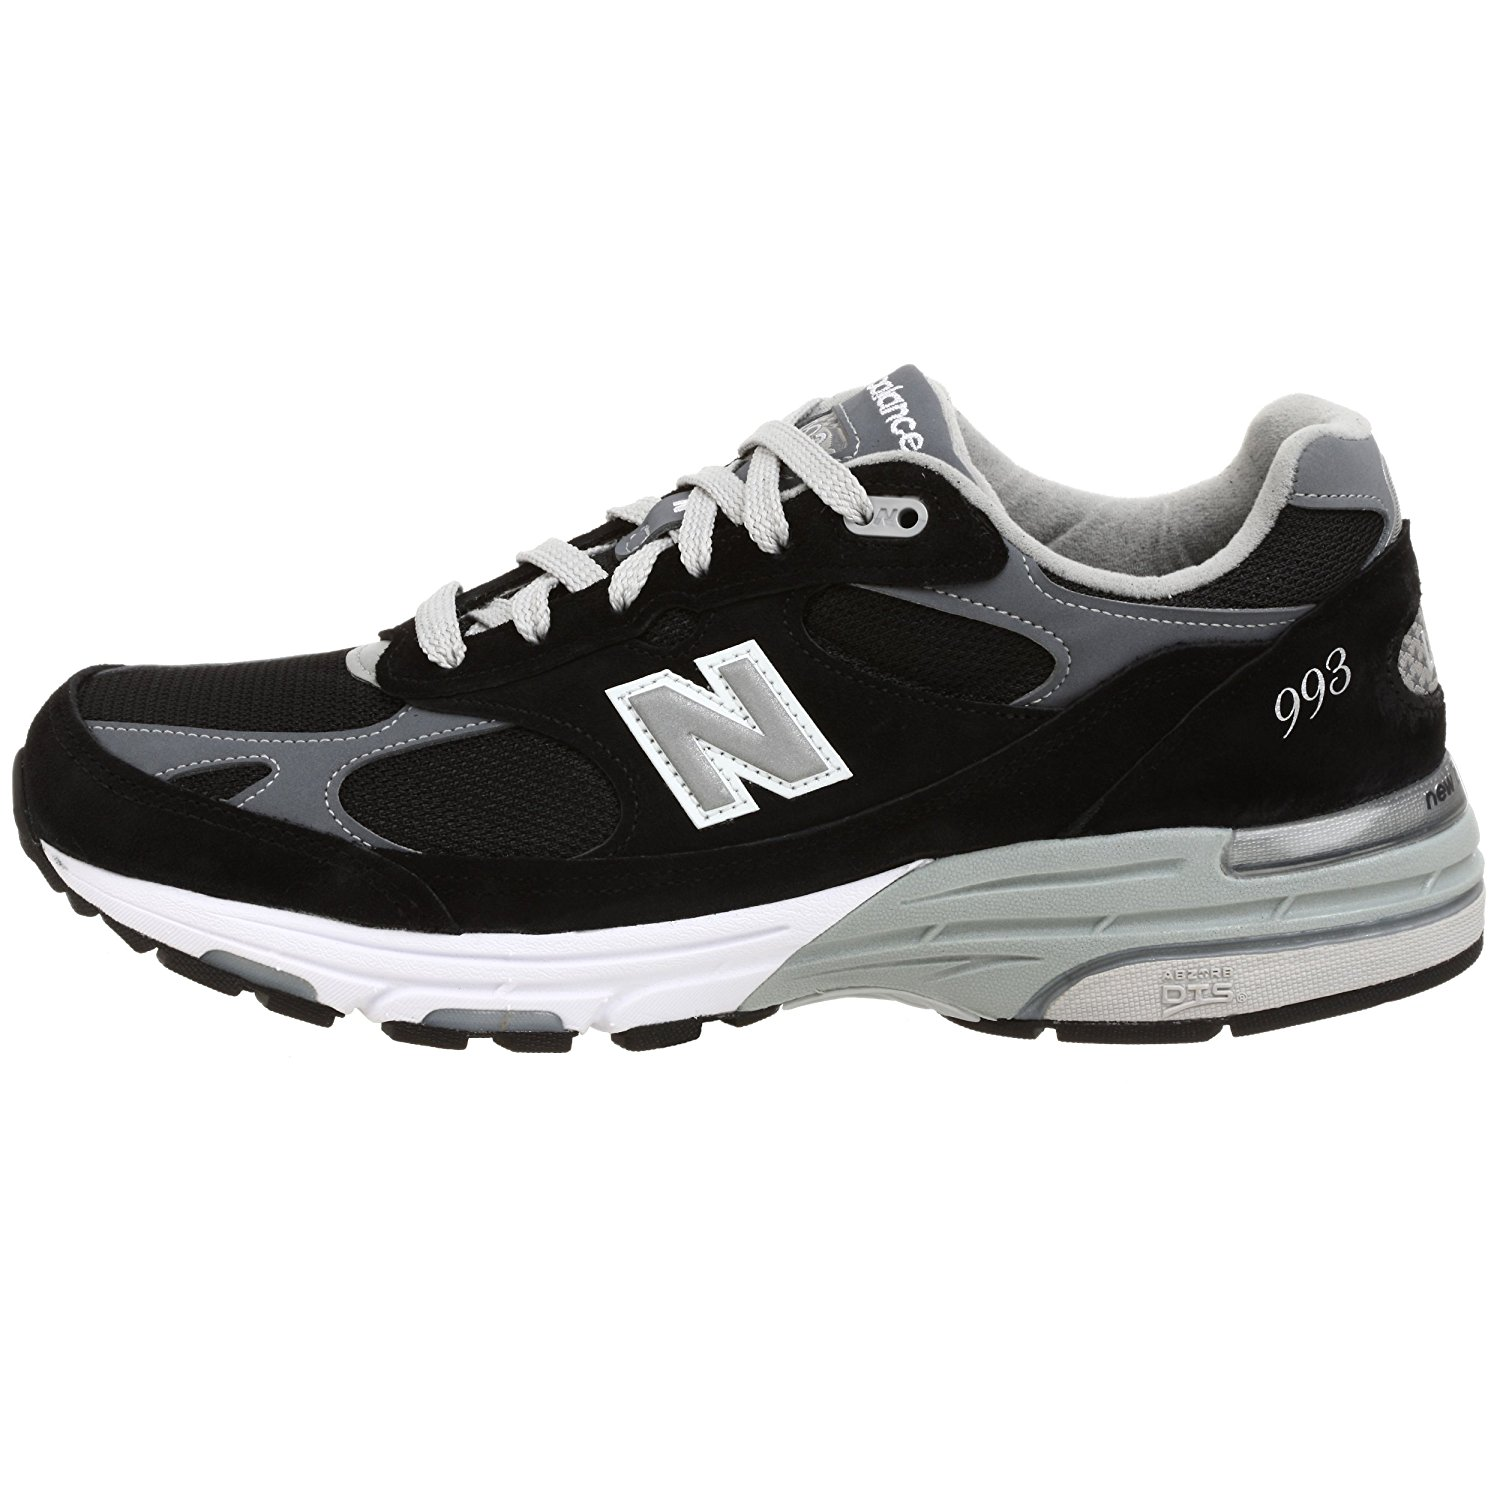 lowest price 195fa 4bd74 Very Goods | Amazon.com | New Balance Men's MR993 Running ...